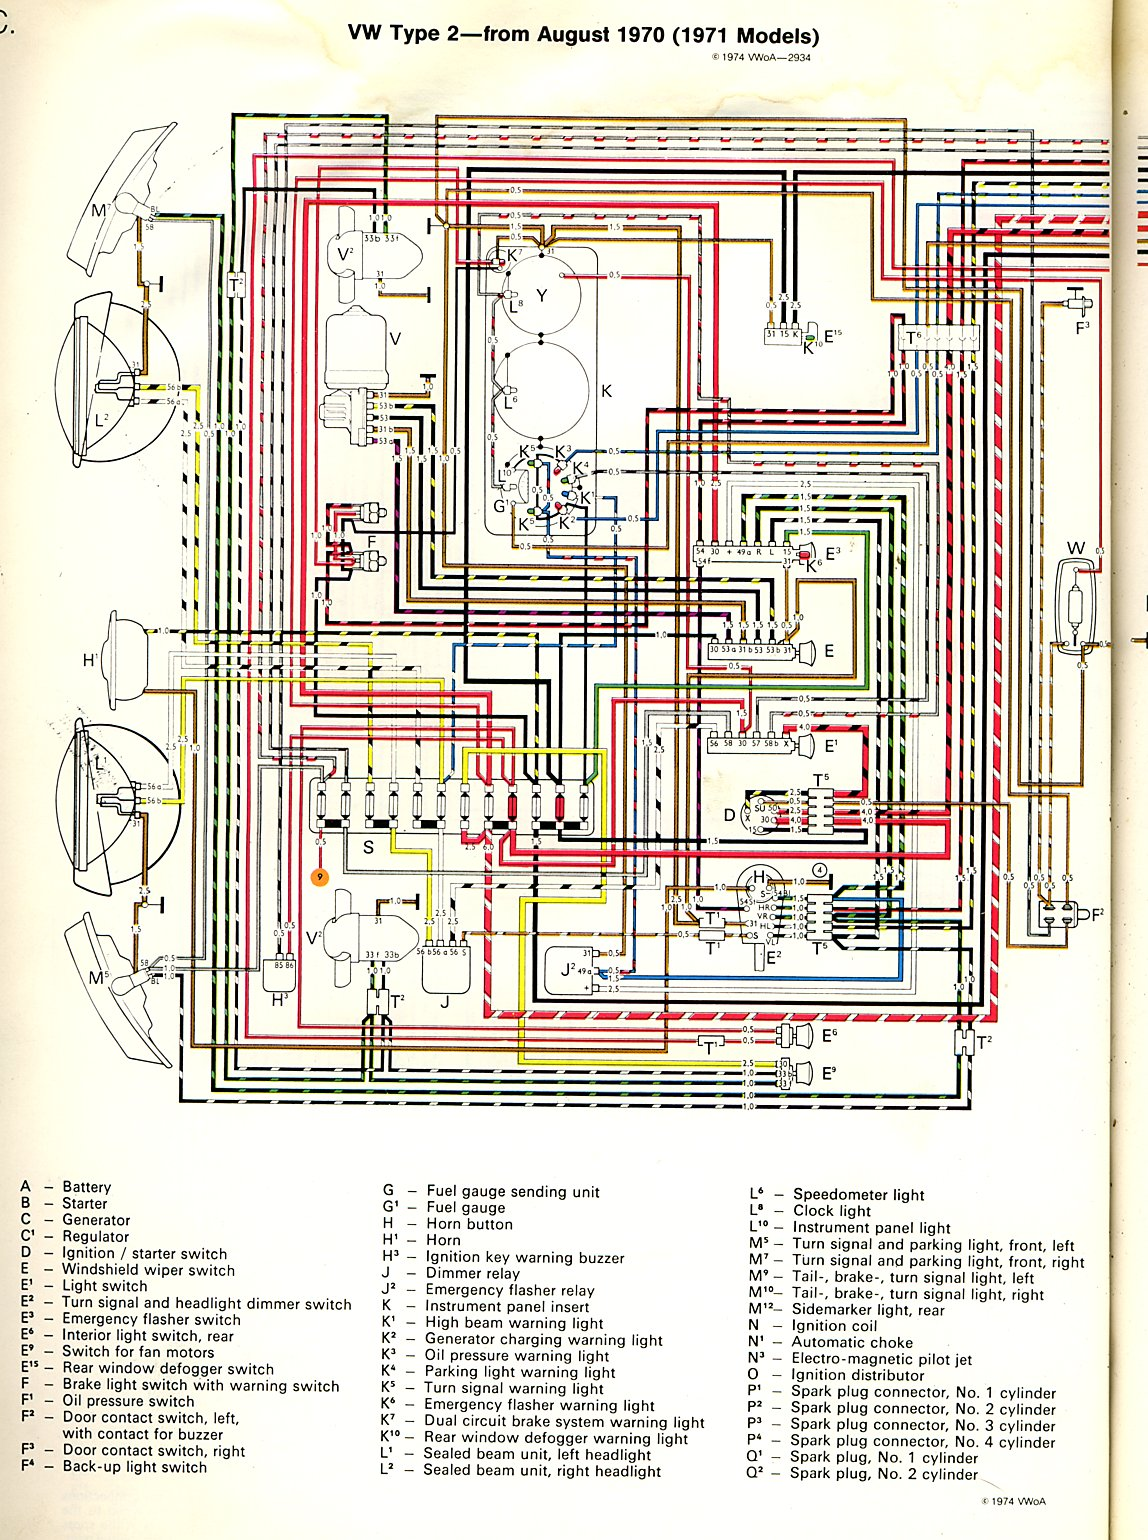 baybus_71a thesamba com type 2 wiring diagrams 1978 vw bus fuse box diagram at love-stories.co